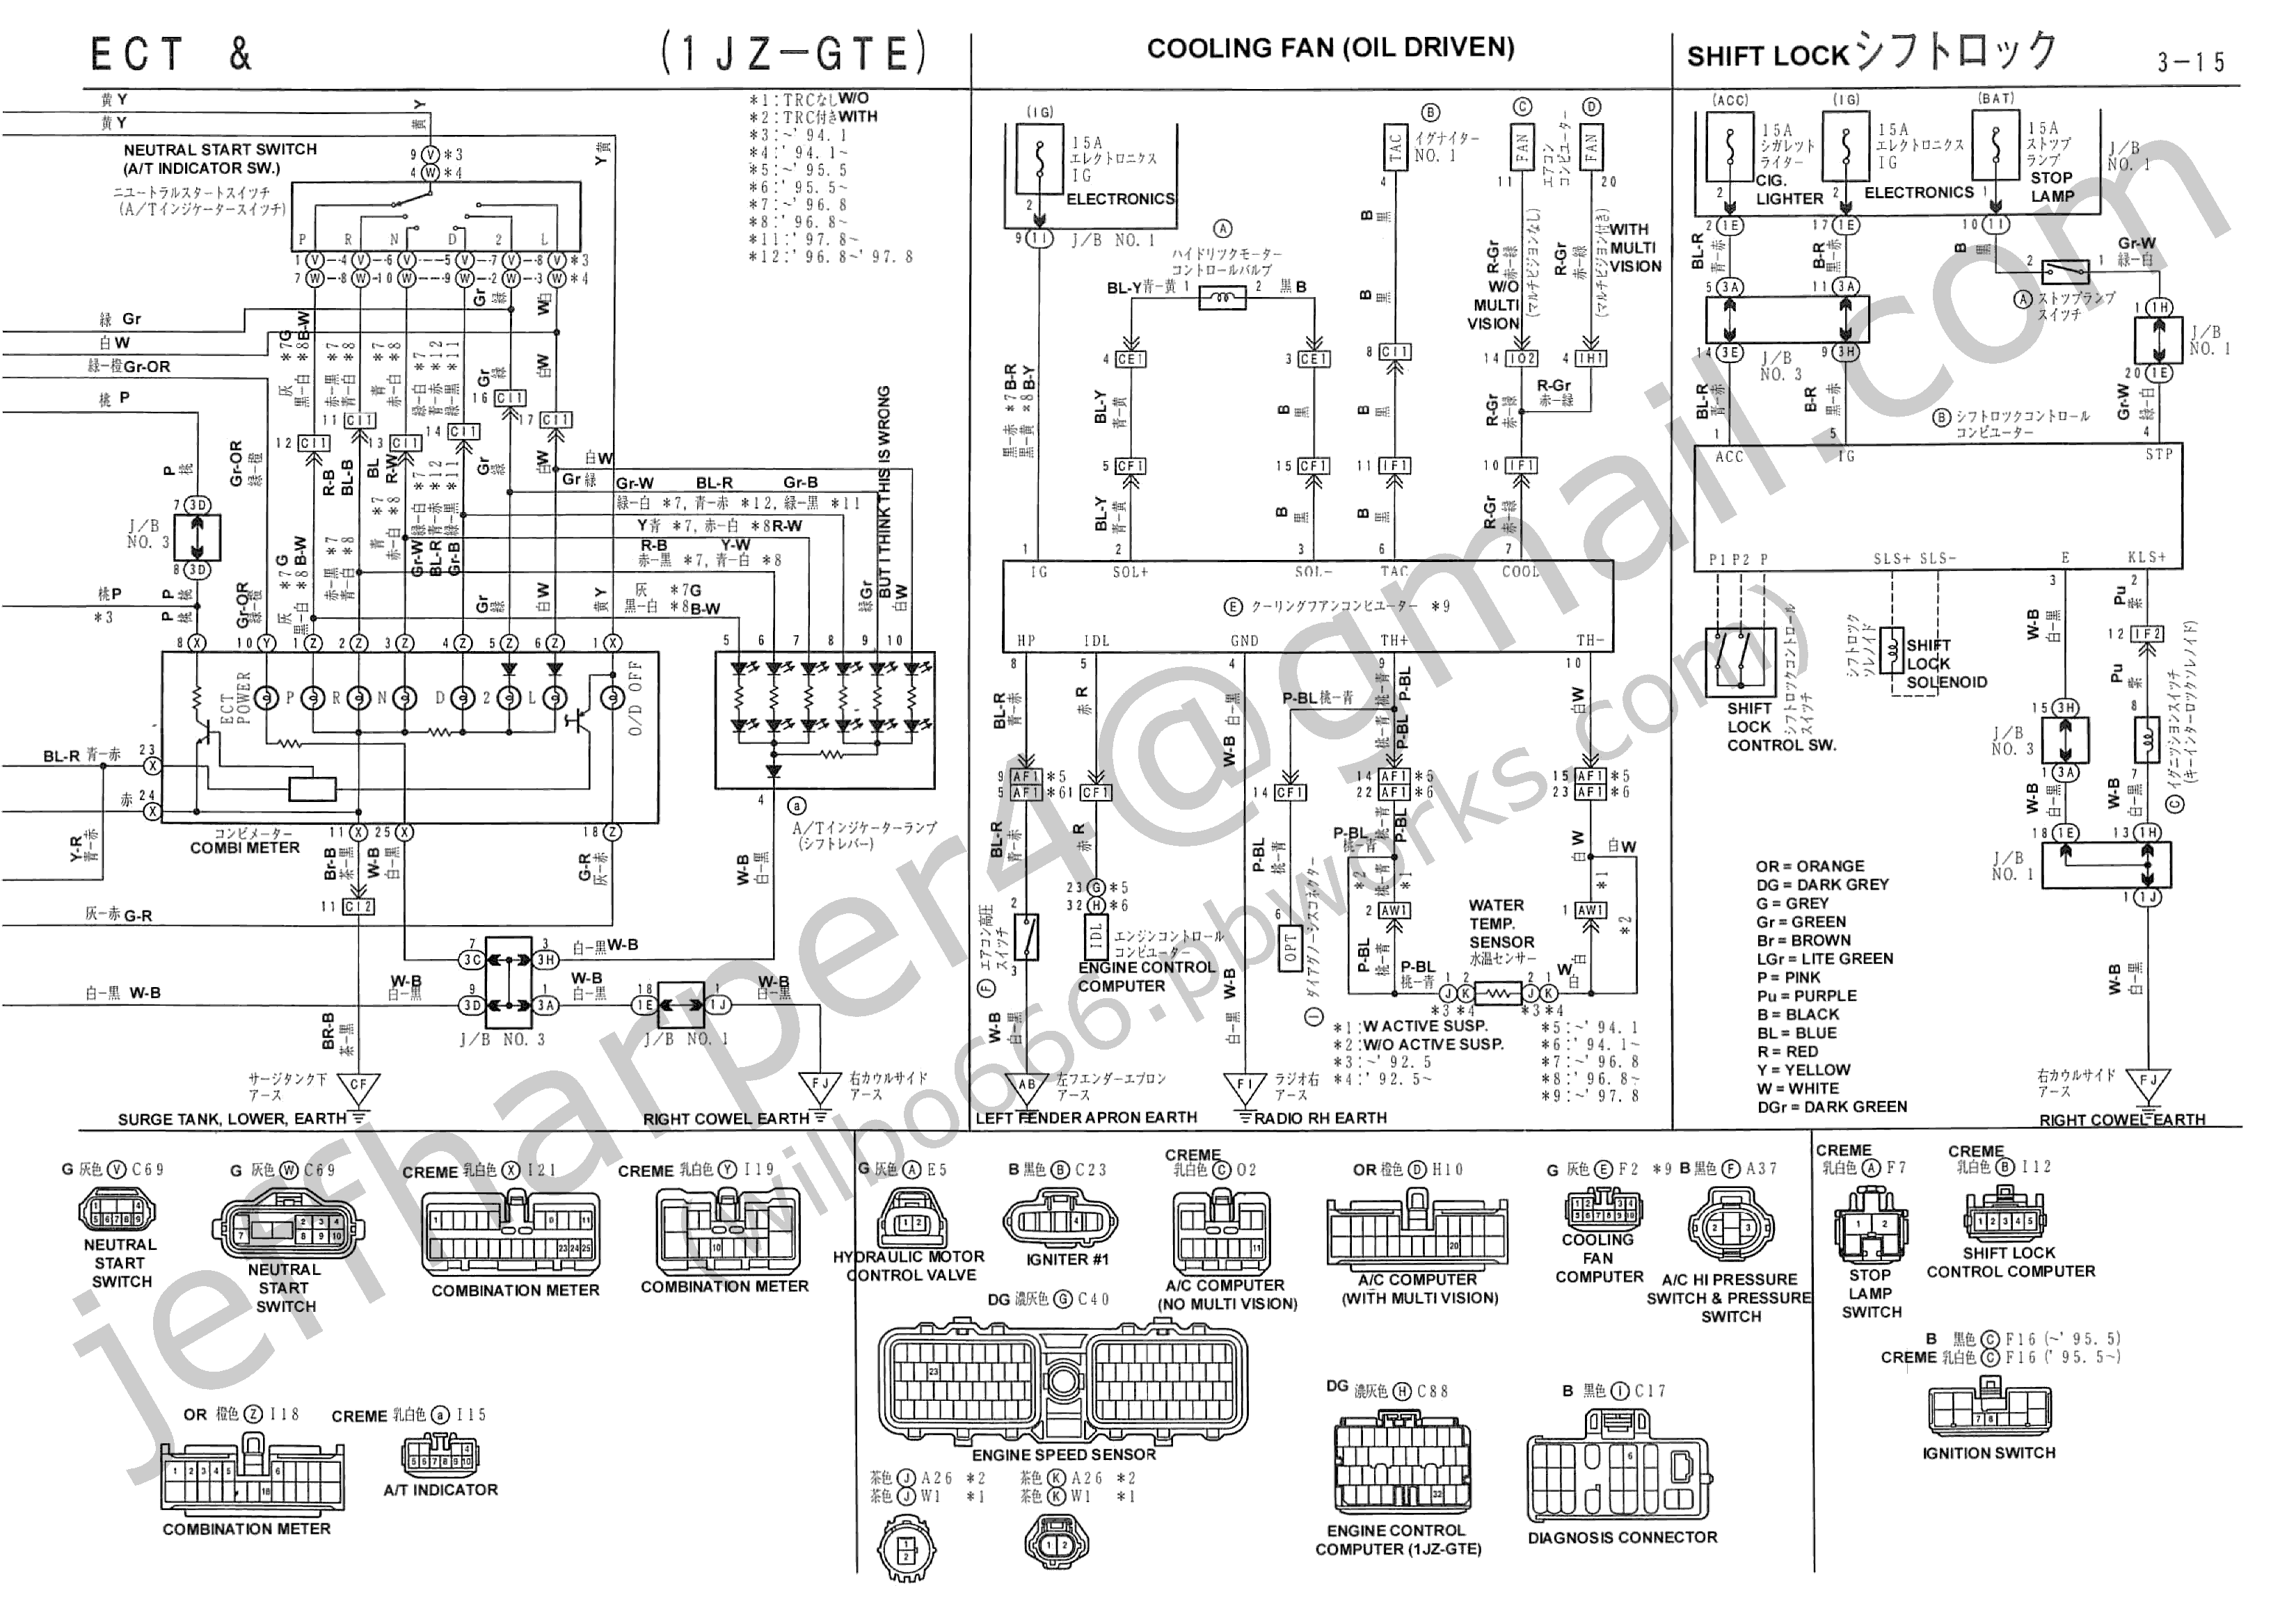 [DIAGRAM] Fiat Ducato Wiring Diagram 2005 FULL Version HD